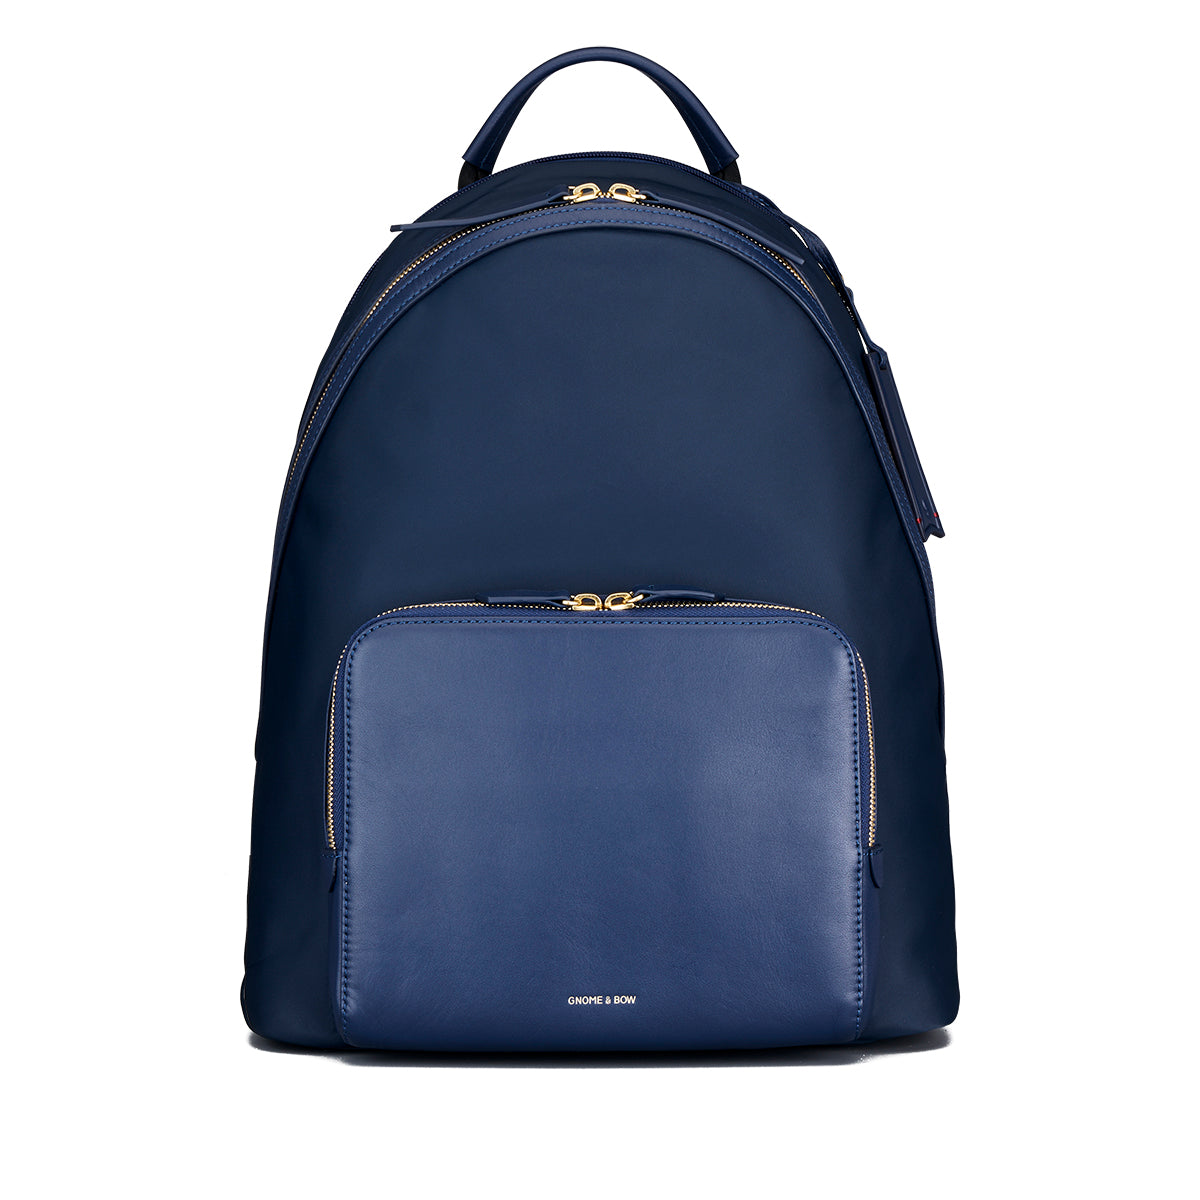 Athos Backpack (Nylon Leather)